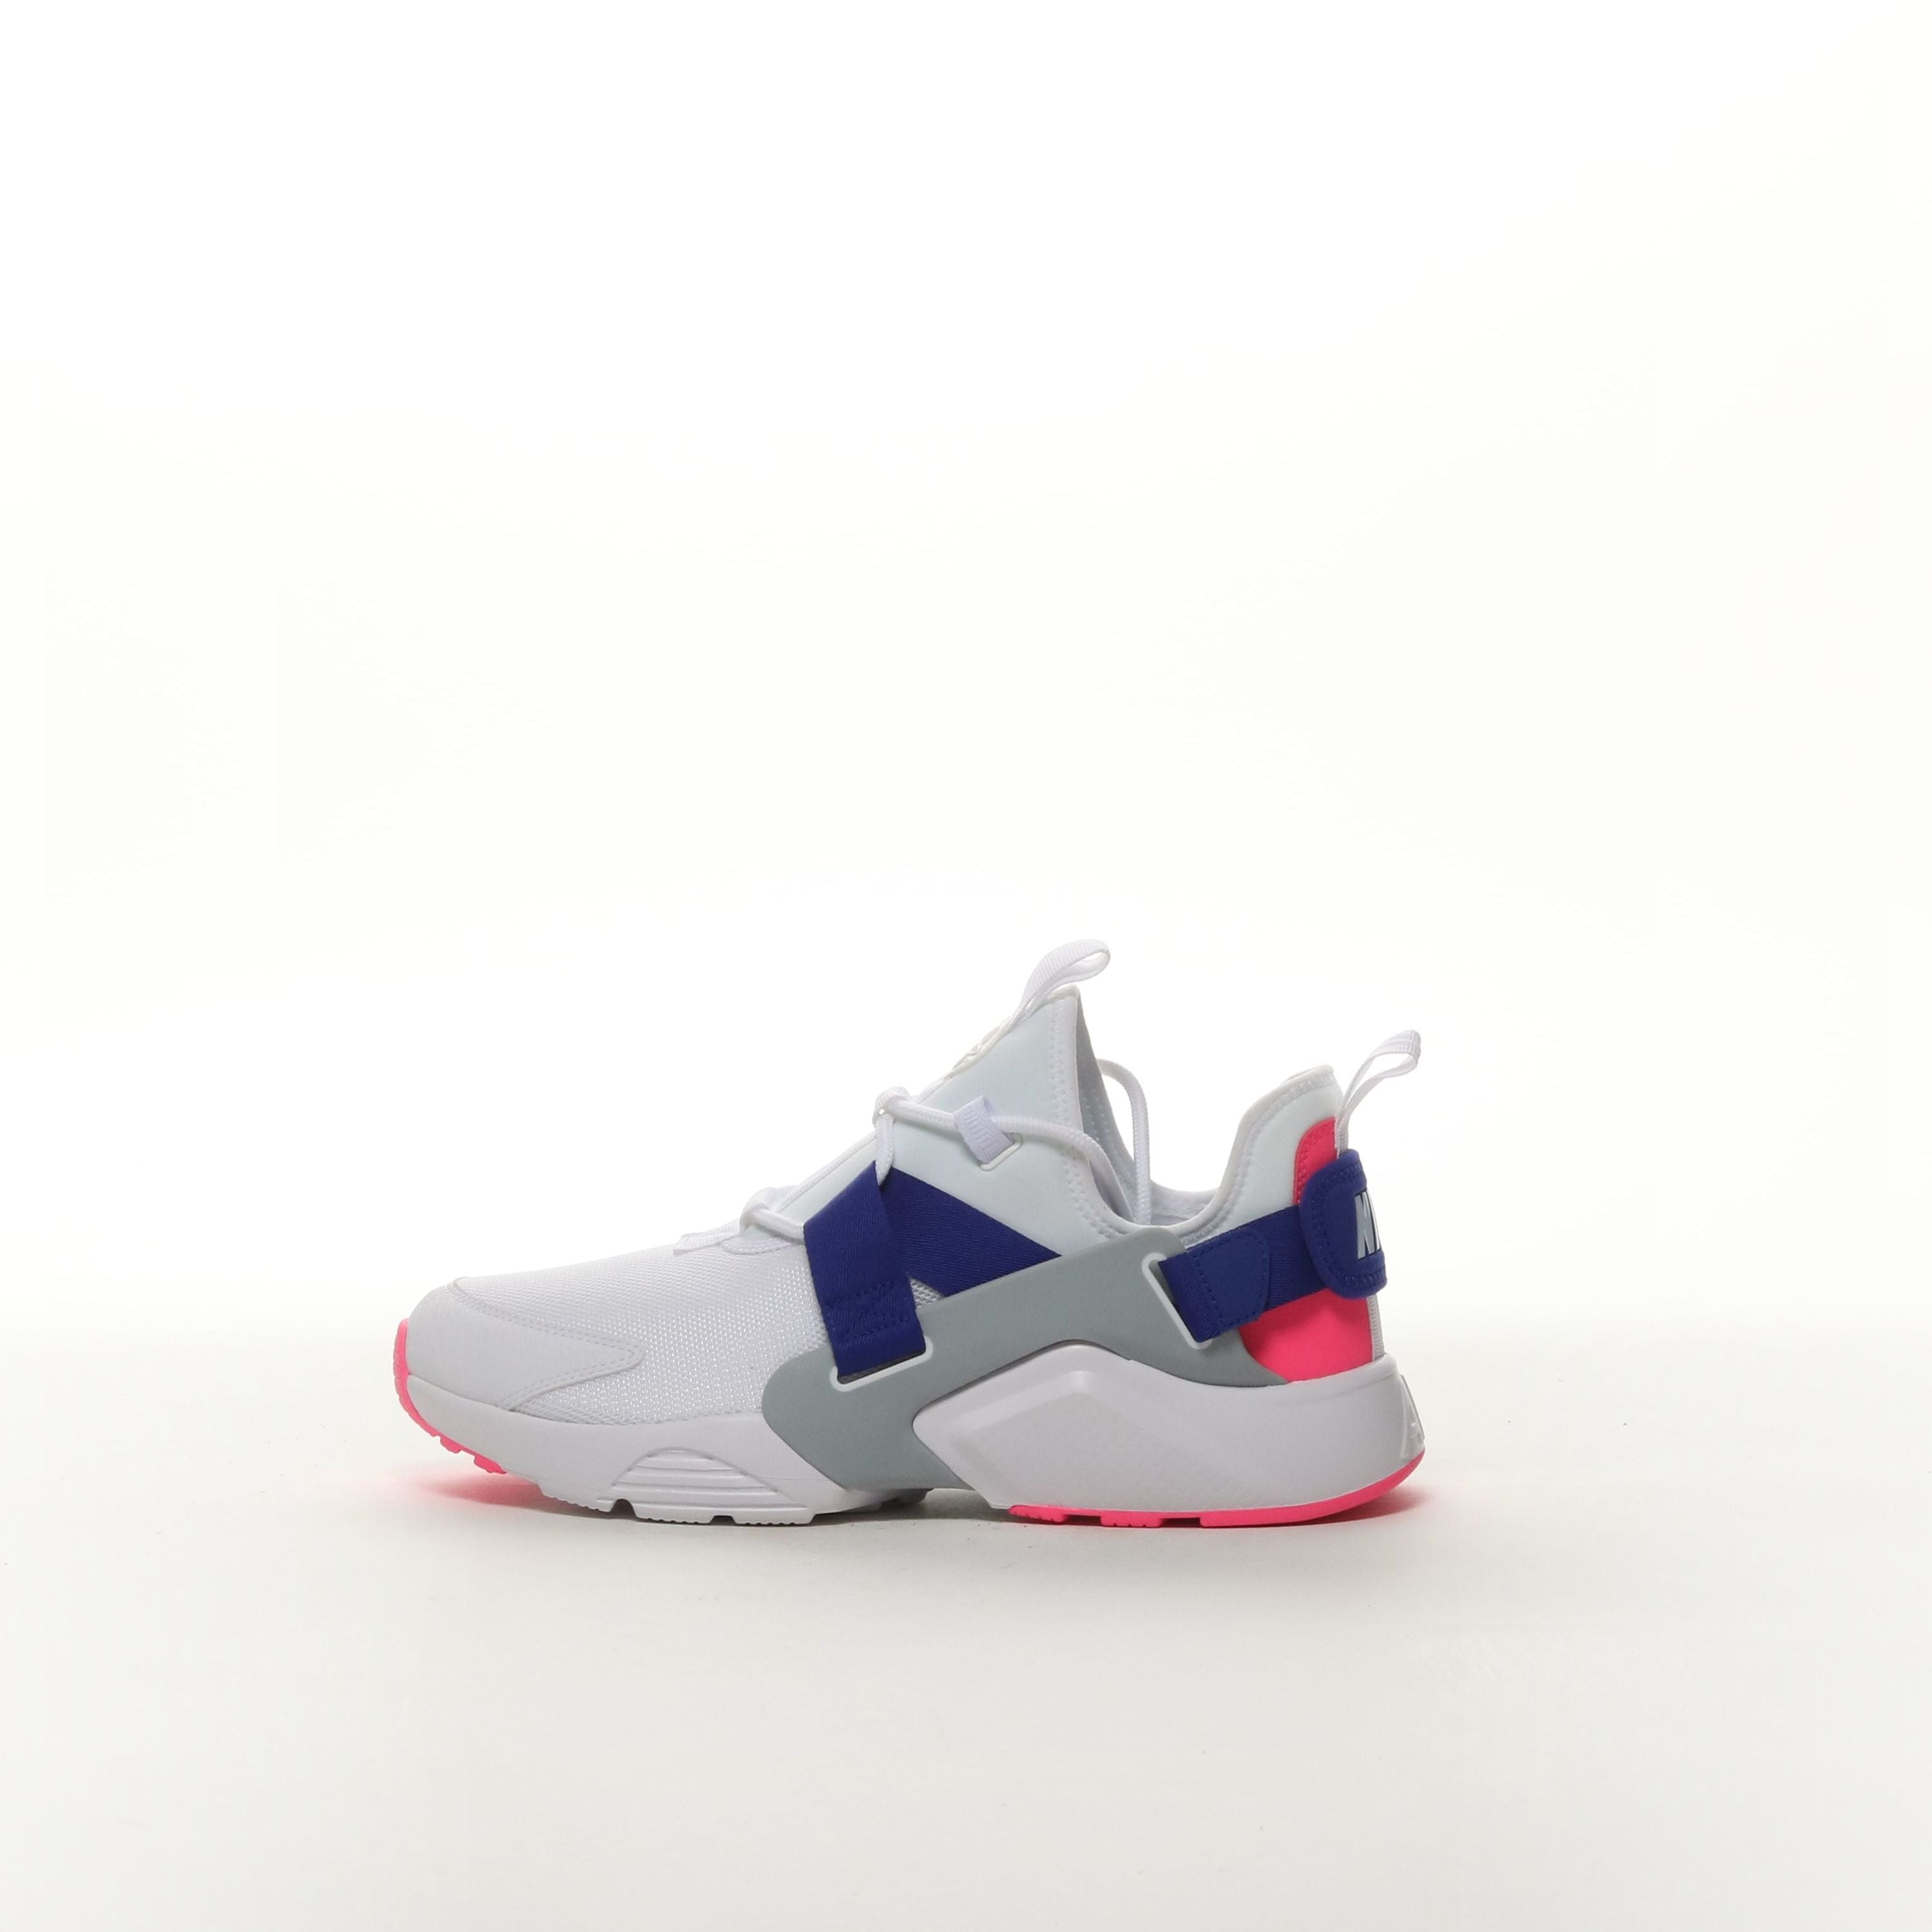 b7f374c09d449 Nike Air Huarache City Low - WHITE/CONCORD/LASER PINK/WOLF GREY – Resku